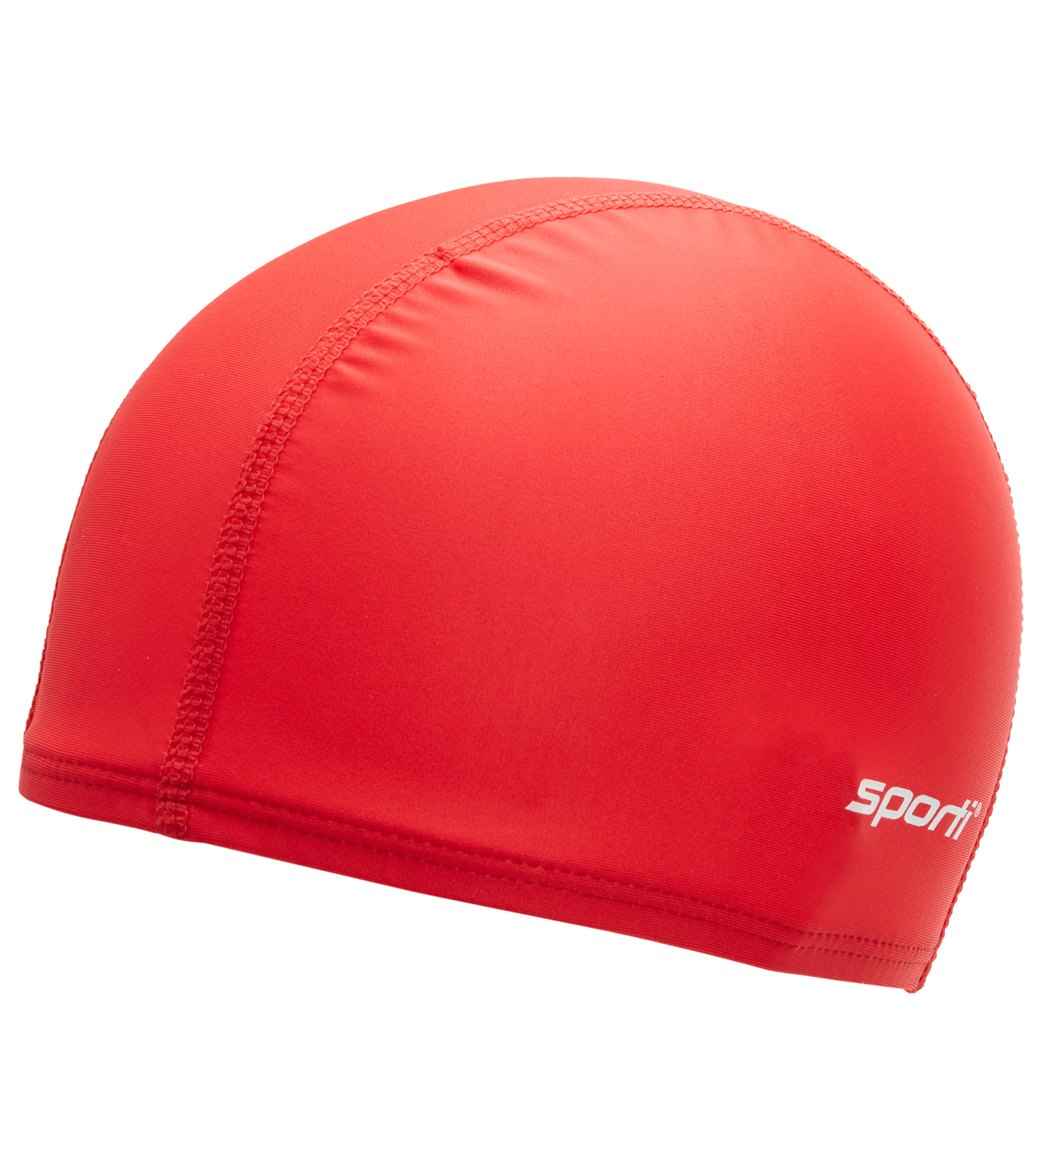 dd5329ff450 Sporti Polyester Spandex Swim Cap at SwimOutlet.com